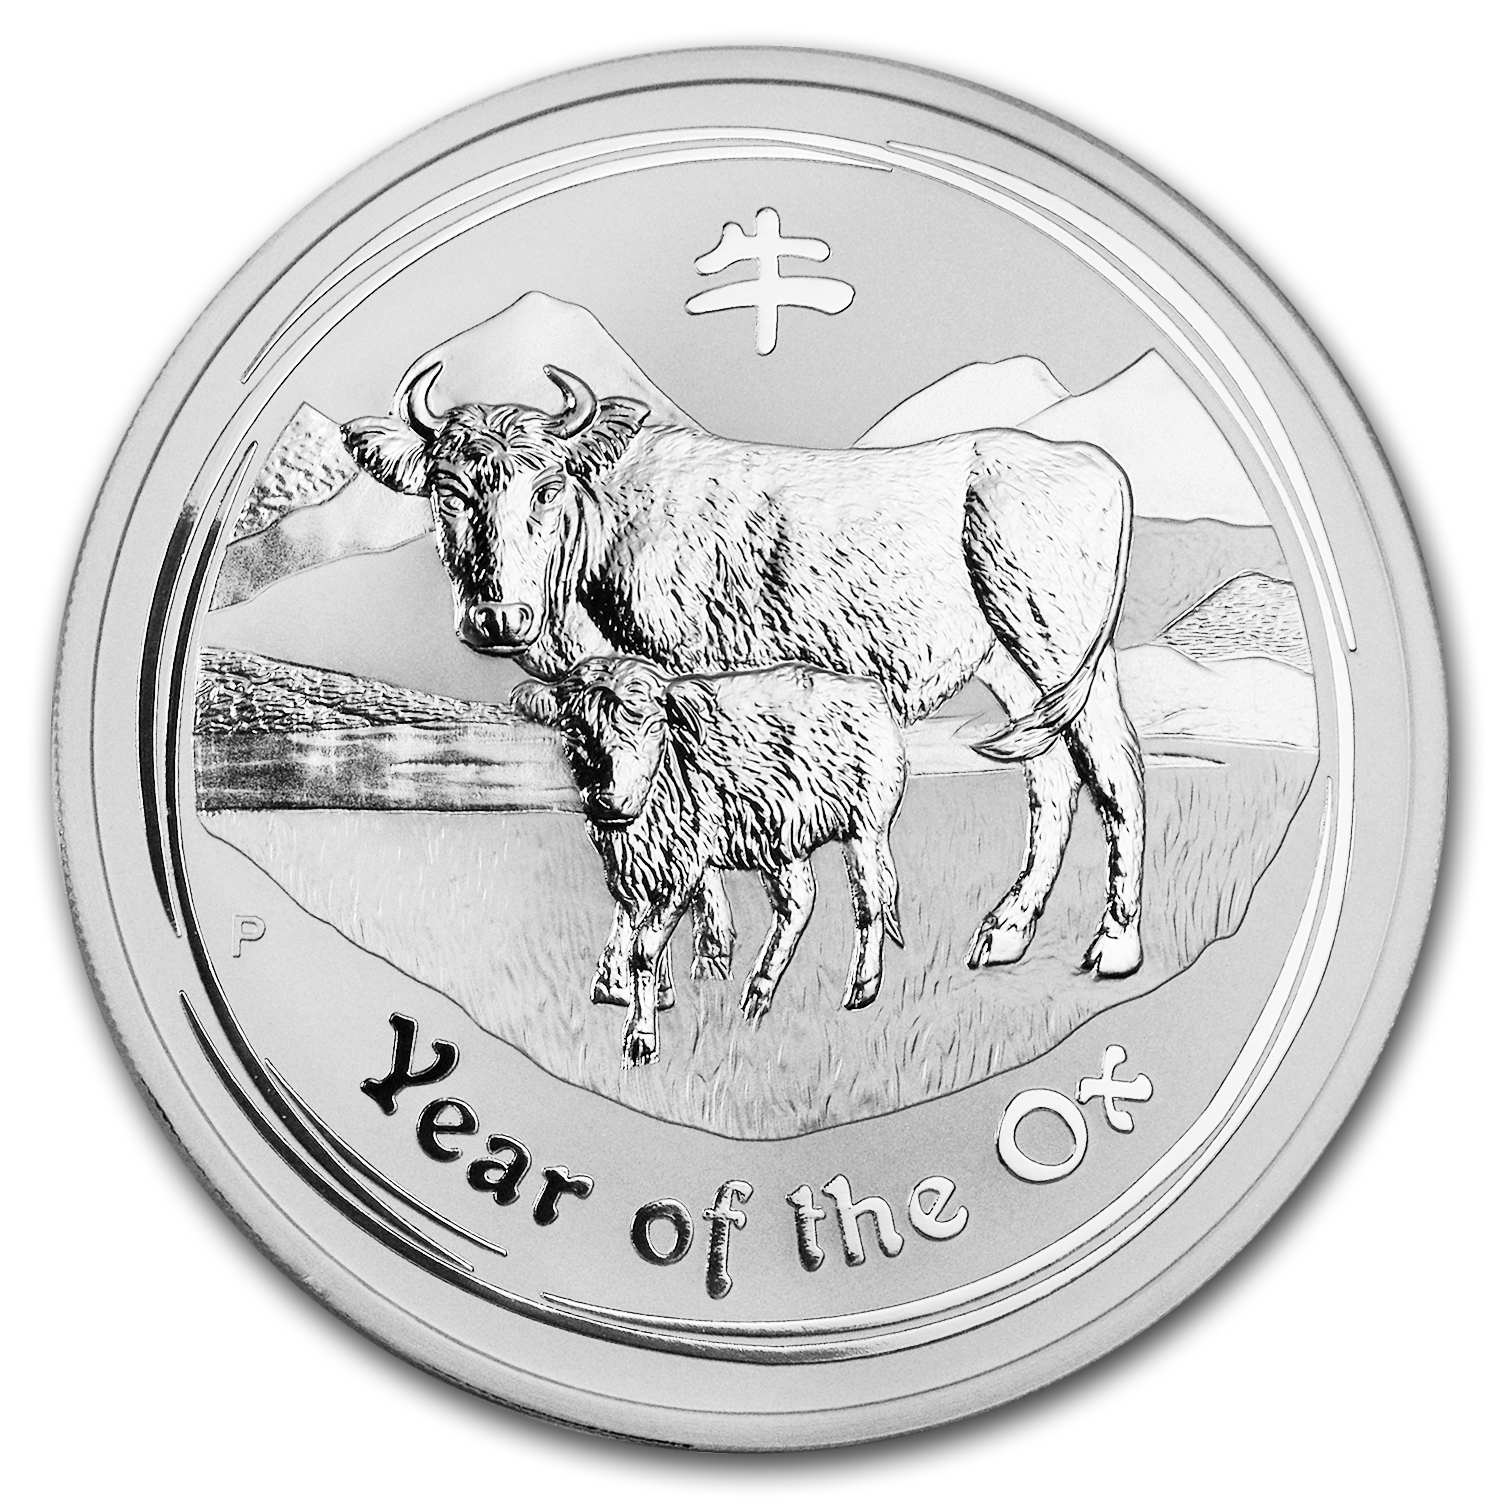 2009 Australia 5 oz Silver Year of the Ox BU (Series II)